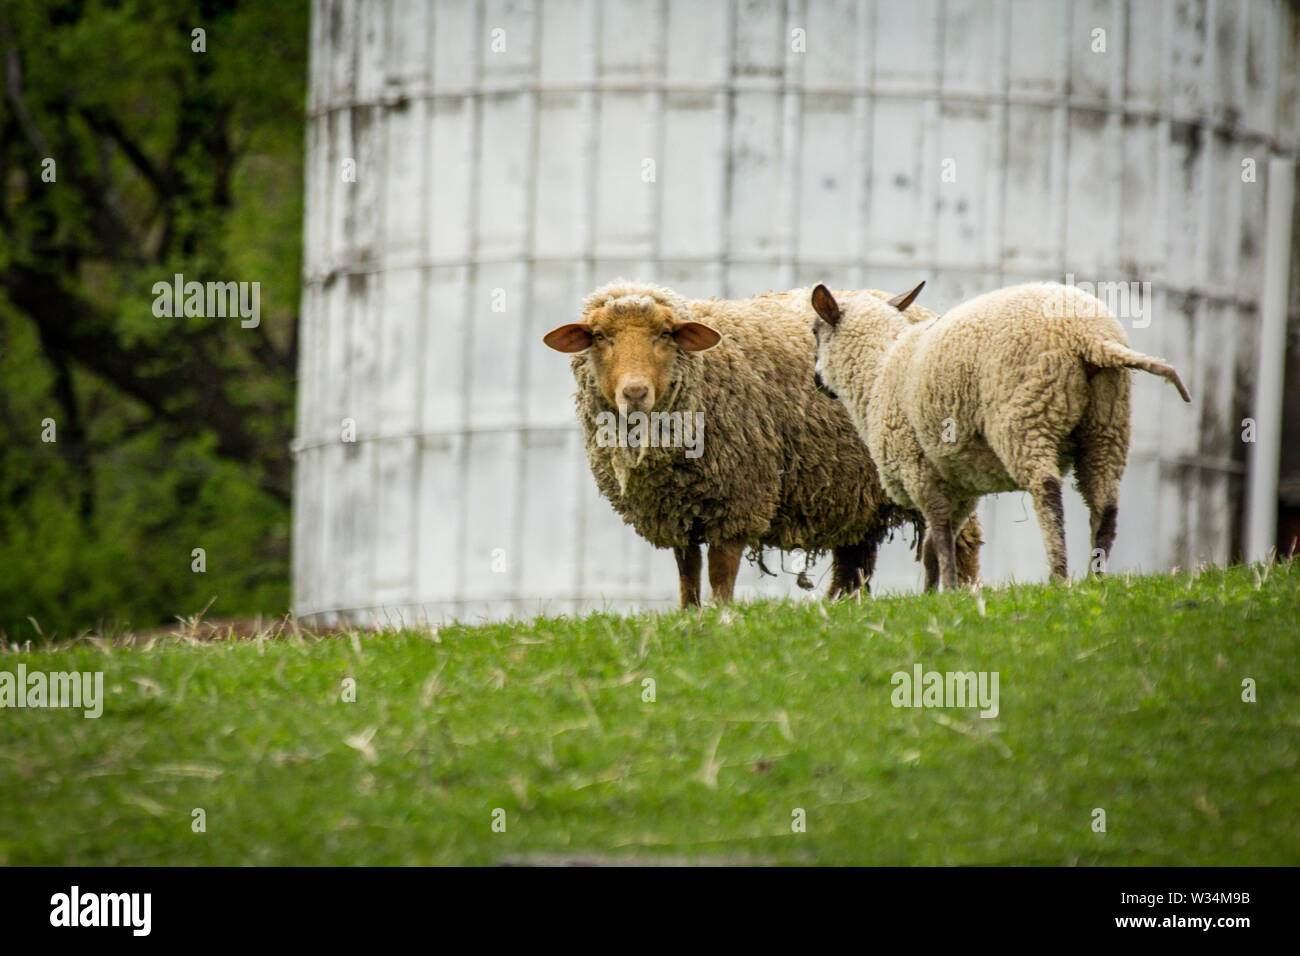 Sheep on farm hillside during early spring day - Stock Image